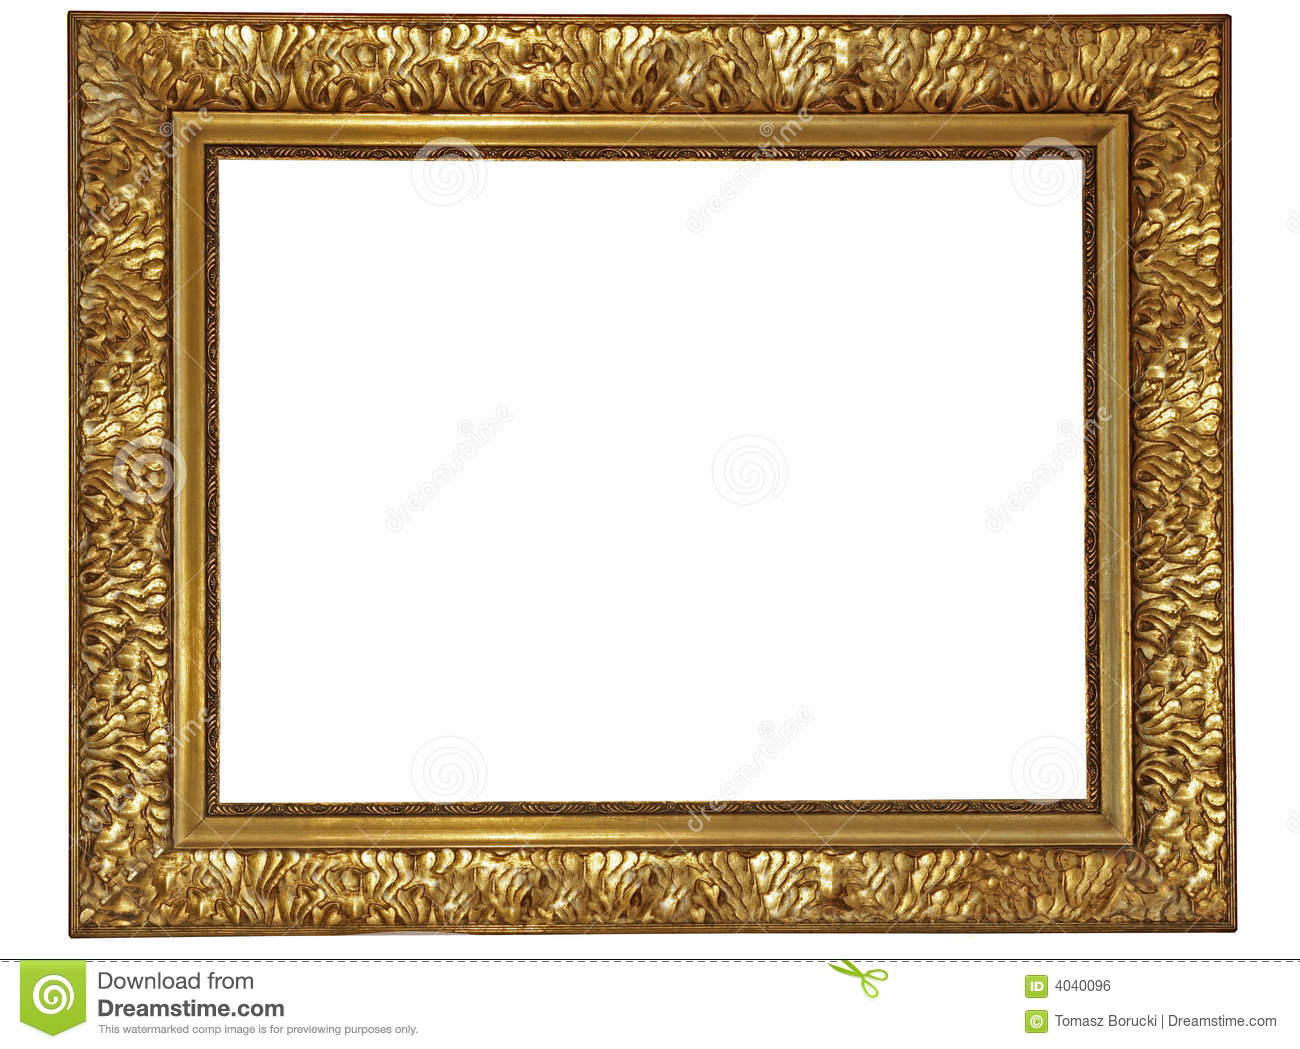 Gold plated wooden frame stock photo. Image of borderline - 4040096